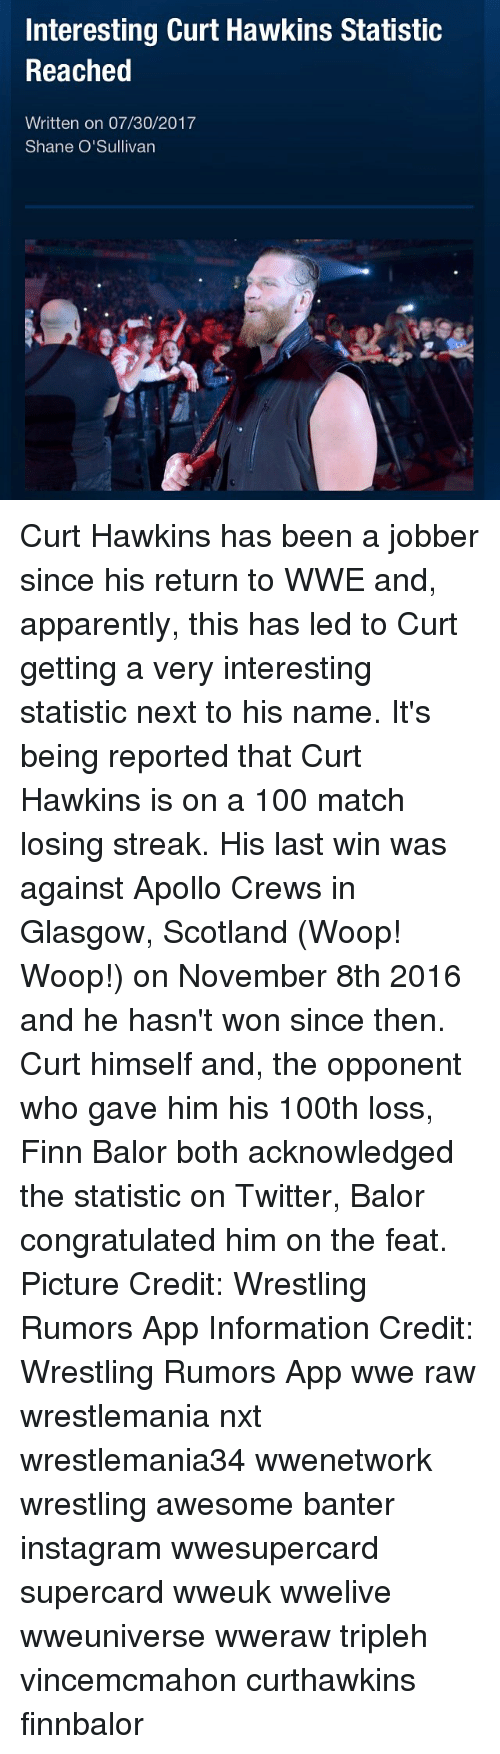 Finn Balor: Interesting Curt Hawkins Statistic  Reached  Written on 07/30/2017  Shane O'Sullivar Curt Hawkins has been a jobber since his return to WWE and, apparently, this has led to Curt getting a very interesting statistic next to his name. It's being reported that Curt Hawkins is on a 100 match losing streak. His last win was against Apollo Crews in Glasgow, Scotland (Woop! Woop!) on November 8th 2016 and he hasn't won since then. Curt himself and, the opponent who gave him his 100th loss, Finn Balor both acknowledged the statistic on Twitter, Balor congratulated him on the feat. Picture Credit: Wrestling Rumors App Information Credit: Wrestling Rumors App wwe raw wrestlemania nxt wrestlemania34 wwenetwork wrestling awesome banter instagram wwesupercard supercard wweuk wwelive wweuniverse wweraw tripleh vincemcmahon curthawkins finnbalor